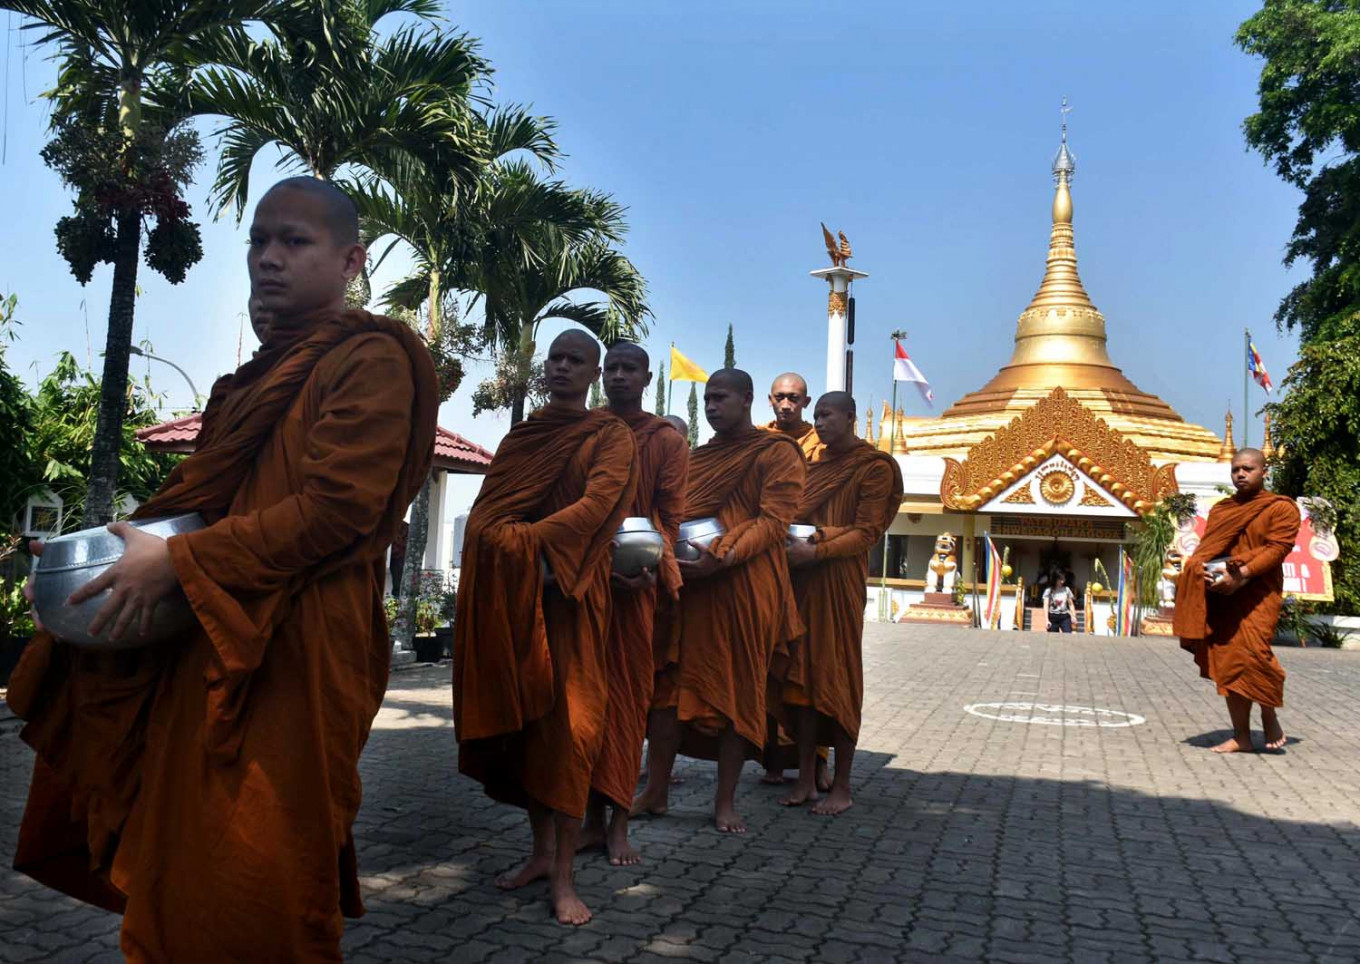 Novice Buddhist monks prepare for the Pindhapata ritual at Dhamadipa Arama Temple in Batu, East Java, on Sunday. This year's Waisak celebrations were held within the temple's compound in respect of Muslims observing Ramadan. JP/Aman Rochman